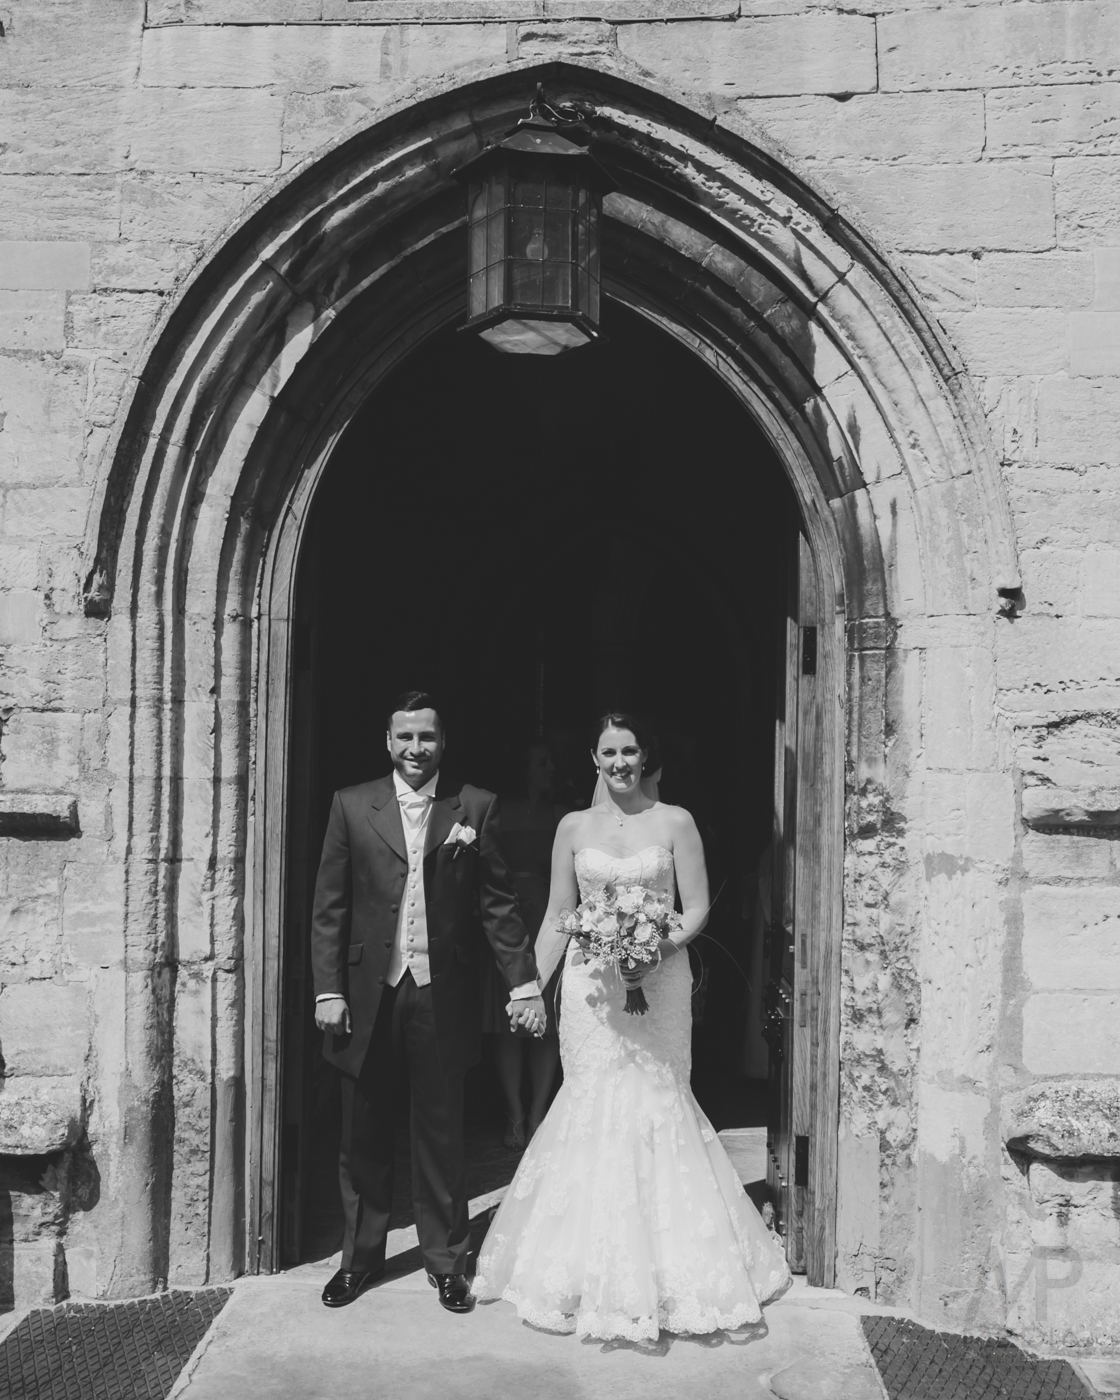 071 - Natalie and Kevals Fine Art Wedding Photography Stoke Rochford Hall by Pamela and Mark Pugh Team MP - www.mpmedia.co.uk - Do NOT remove the watermark or edit this image without consent -202.JPG